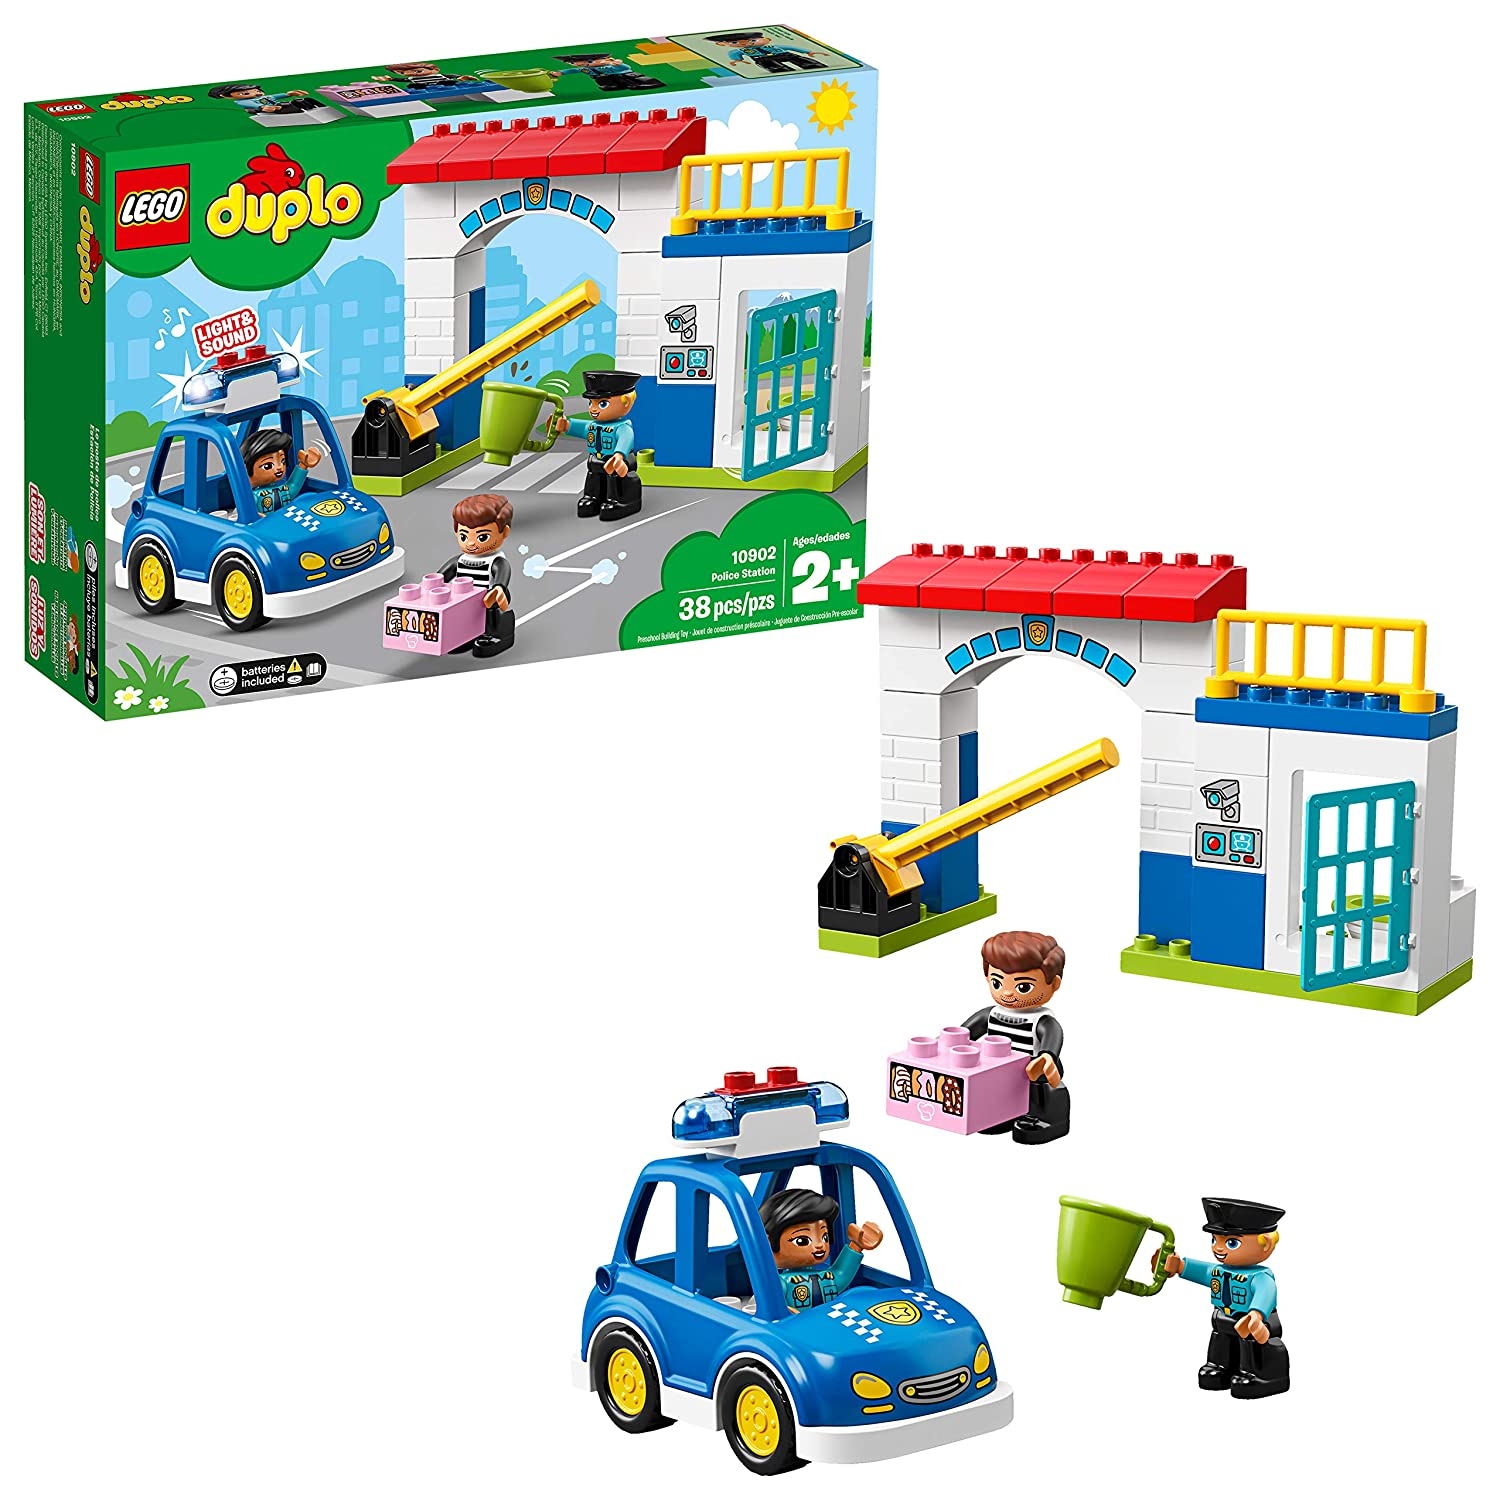 Top 9 Best LEGO Police Station Set Reviews in 2021 15